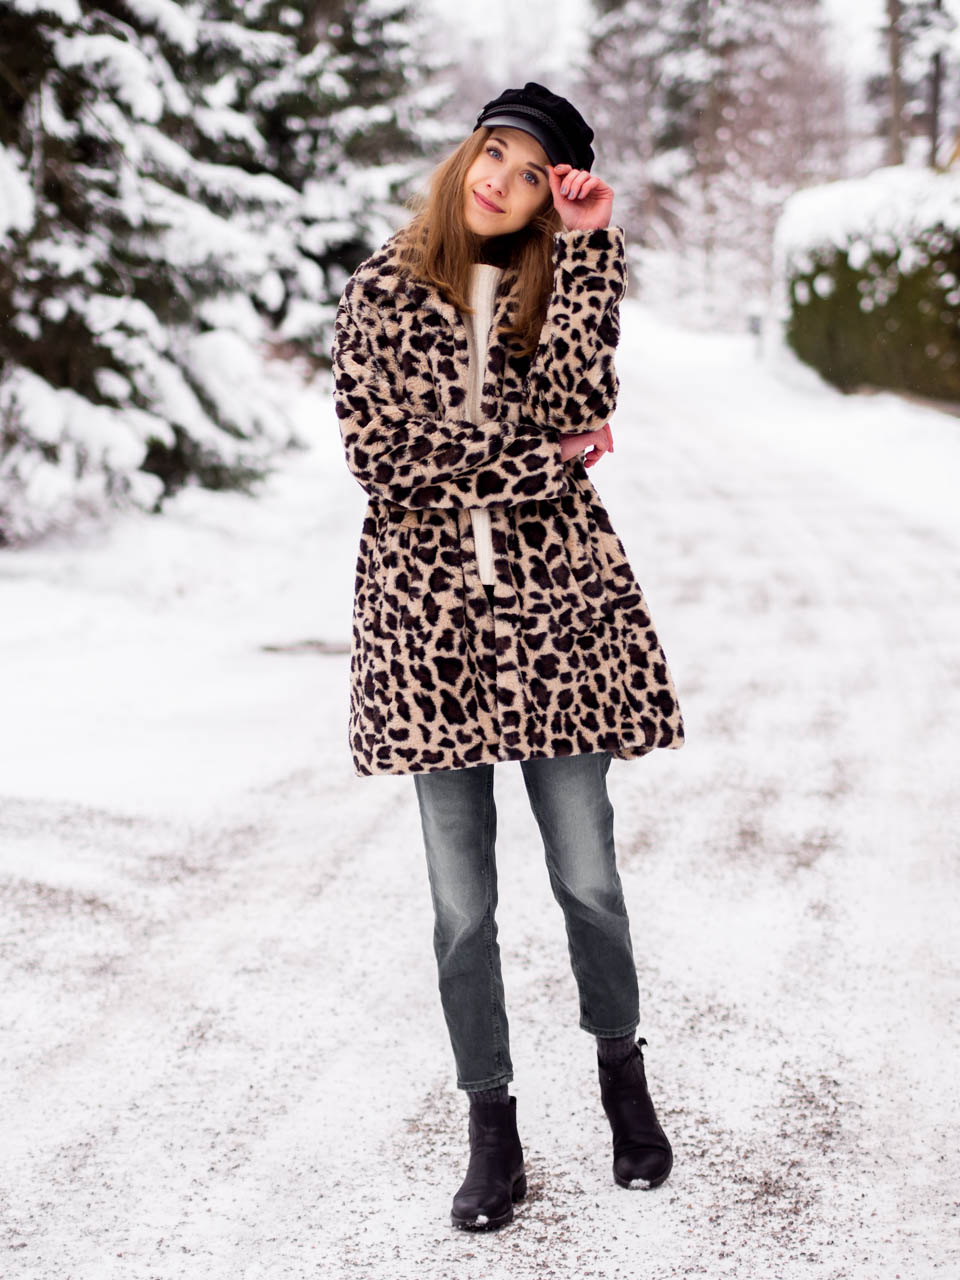 fashion-blogger-outfit-leopard-print-faux-fur-coat